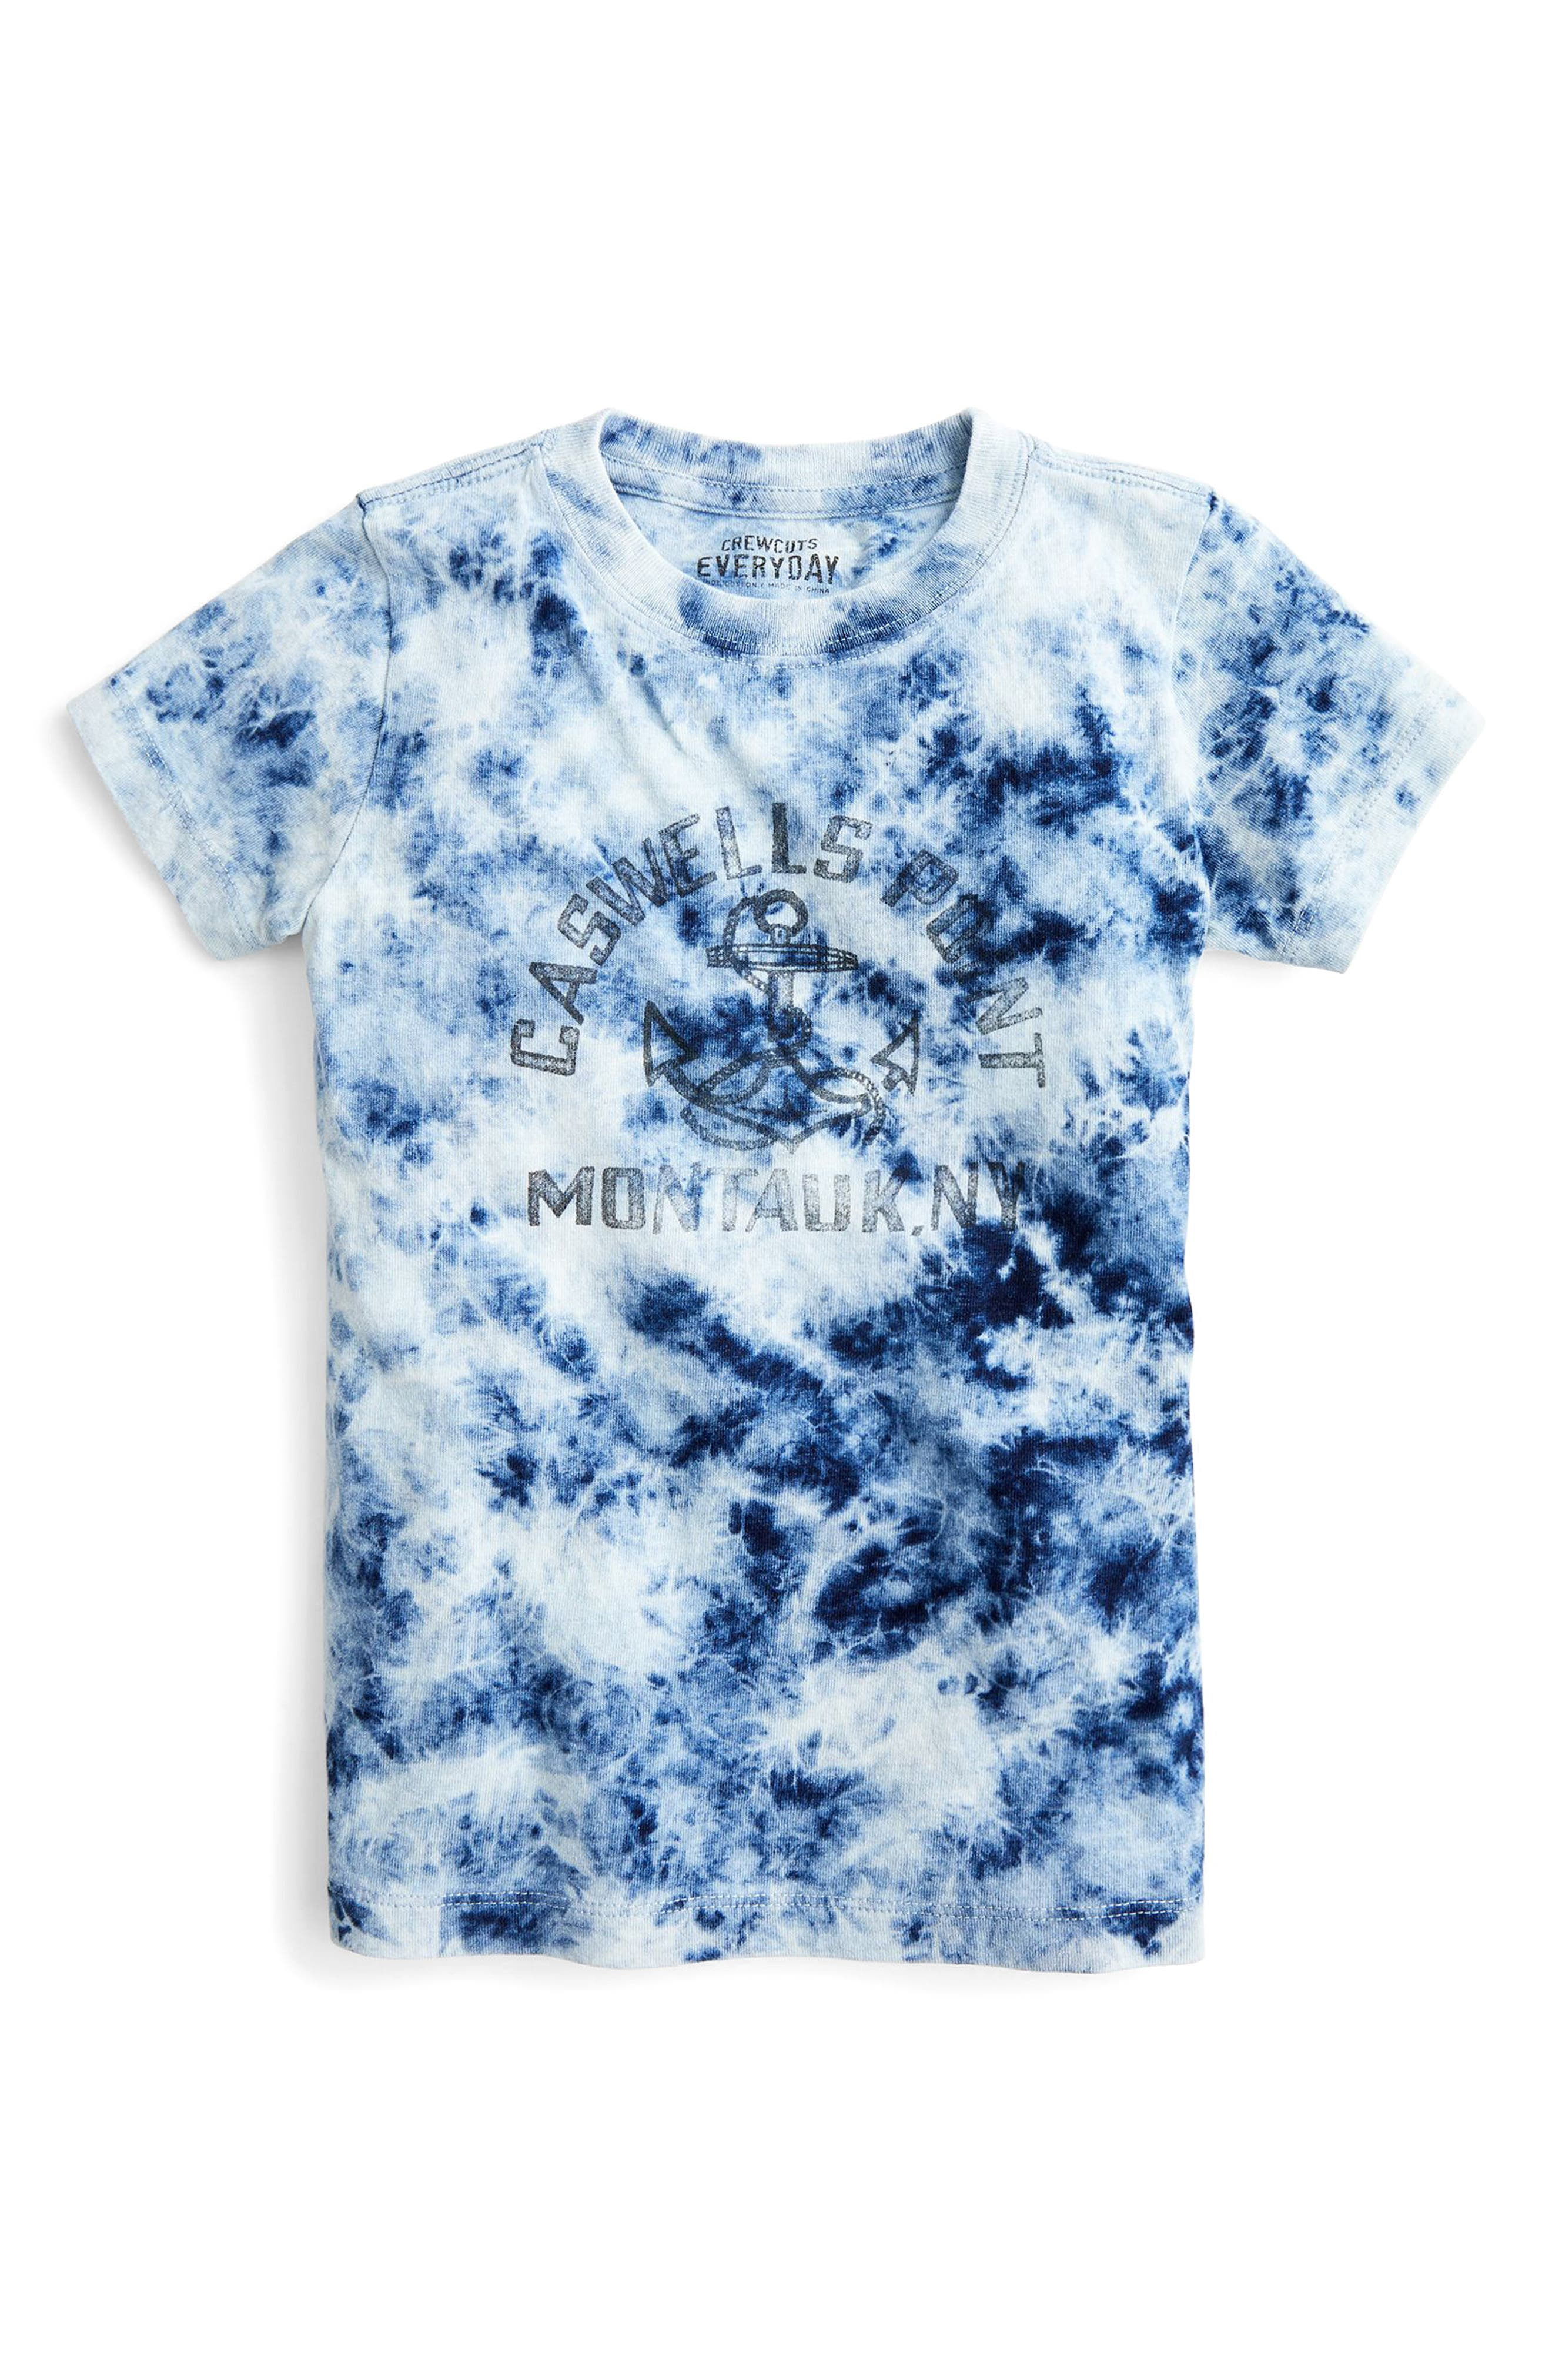 Montauk Tie Dye T-Shirt,                         Main,                         color, Medium Wash